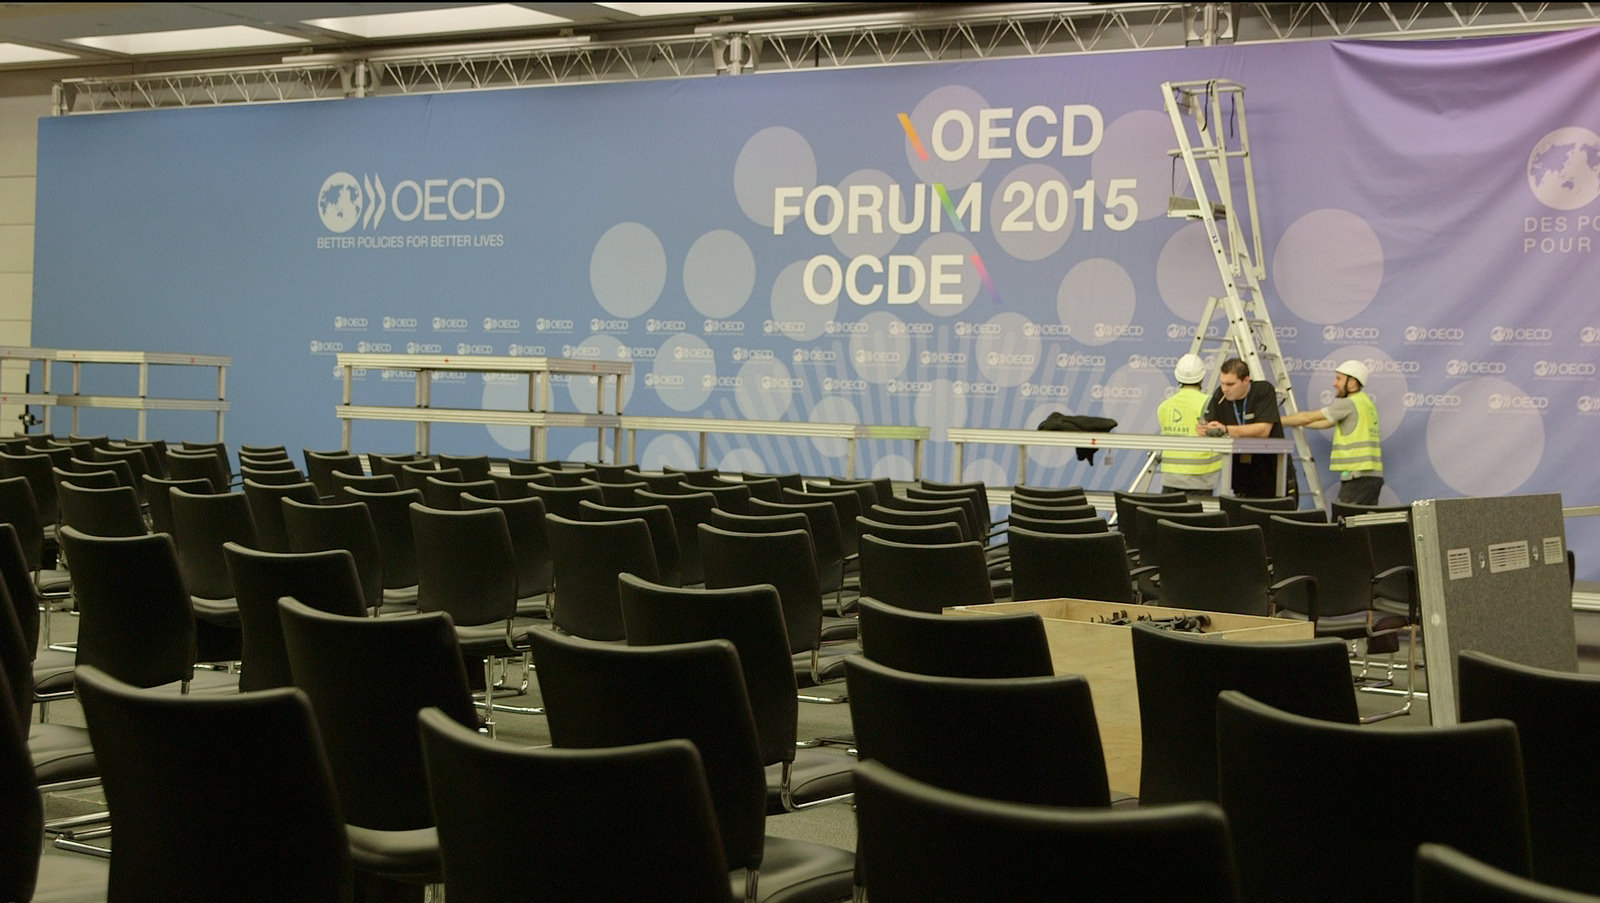 Getting ready for OECD Week 2015